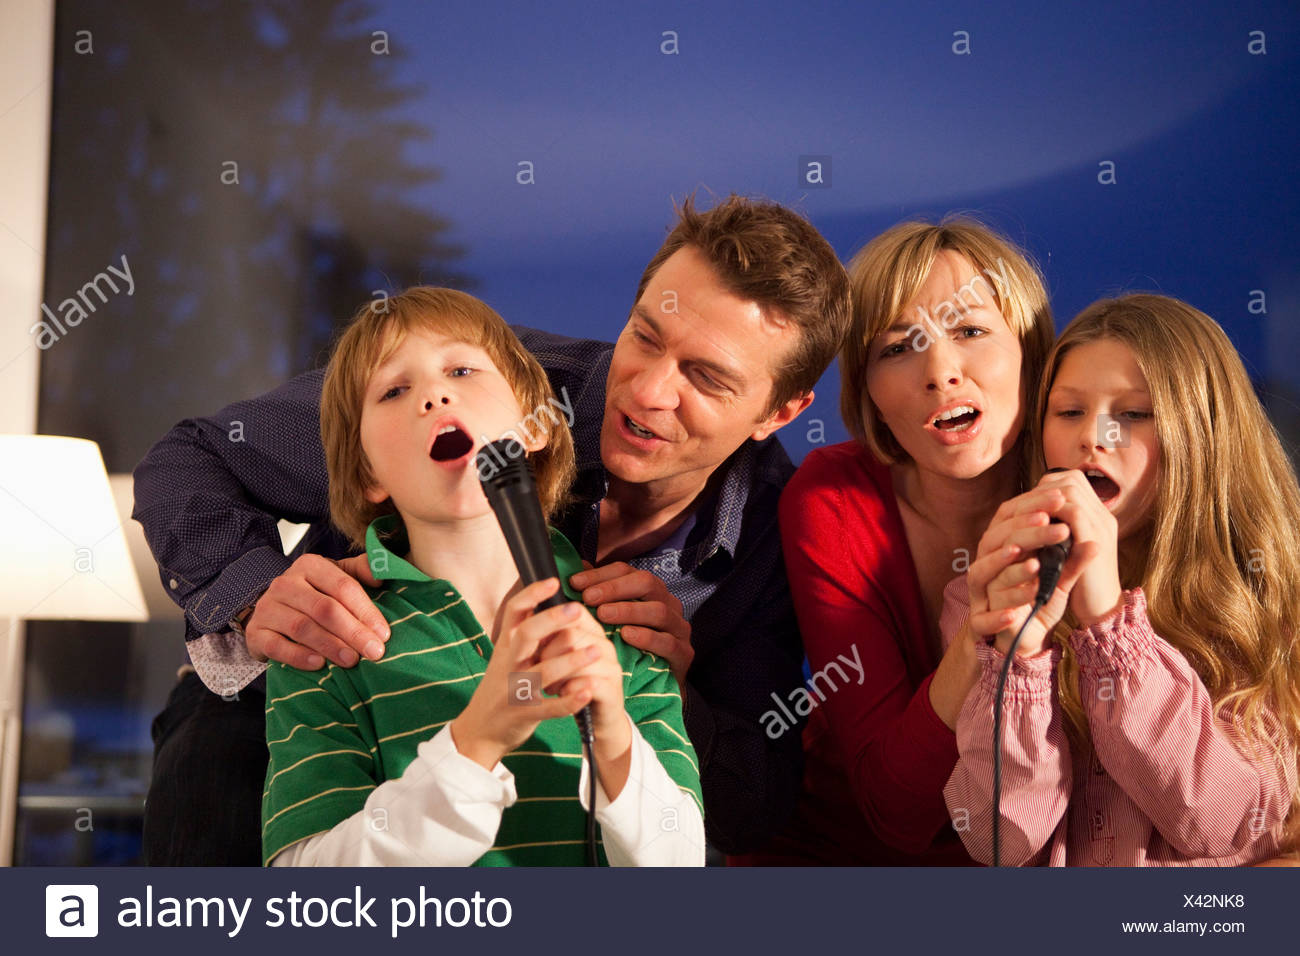 home karaoke stock photos home karaoke stock images alamy